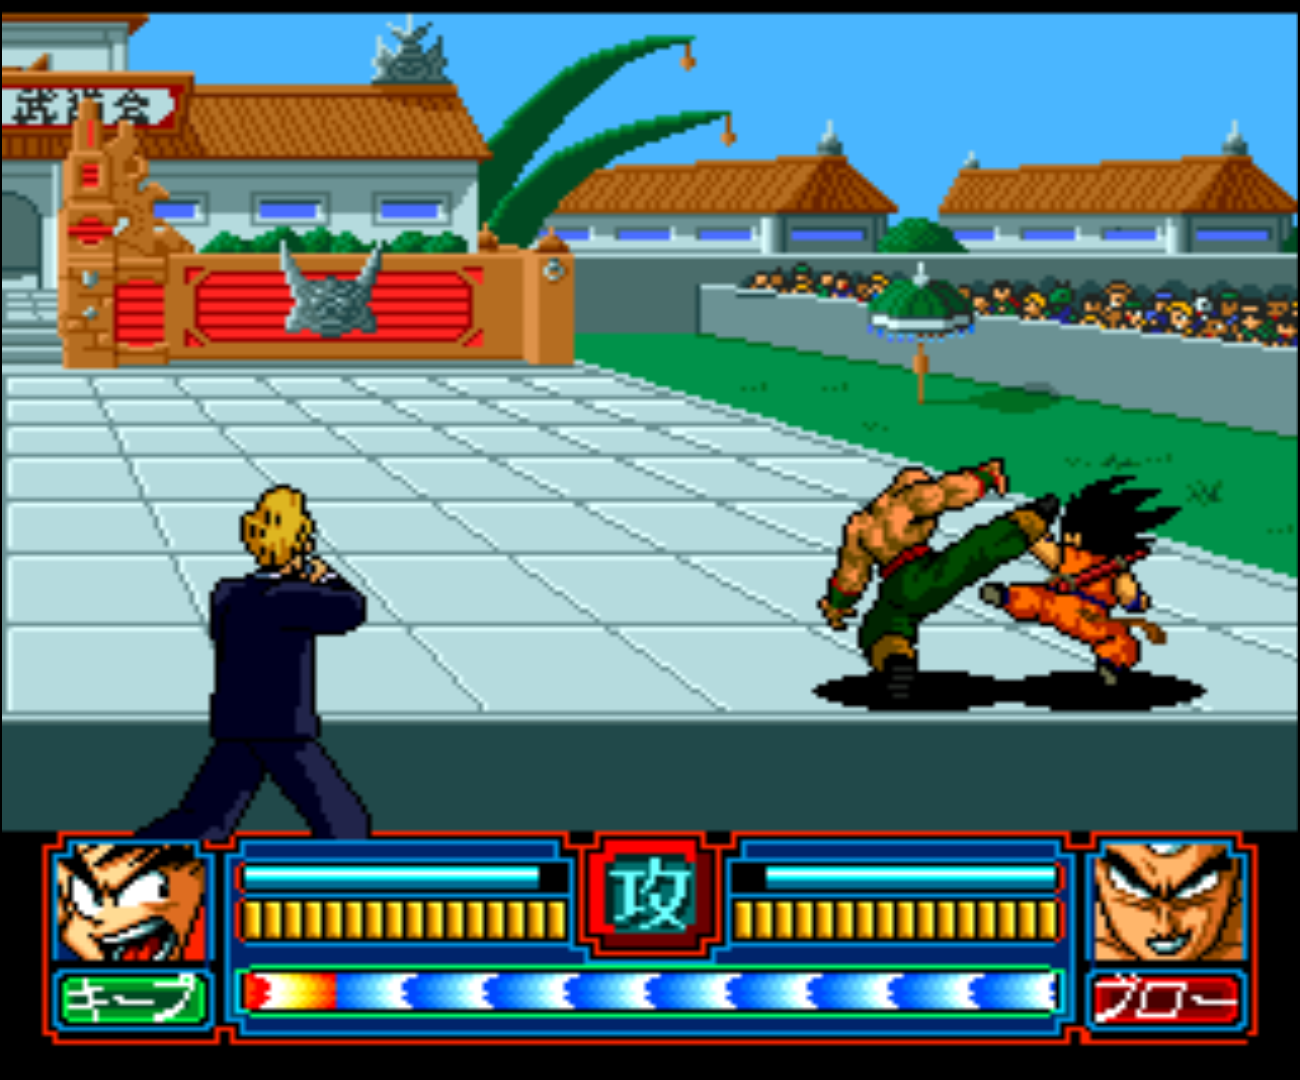 Figure 5 - Main battle field in Dragon Ball Z - Idainaru Son Gokuu Densetsu